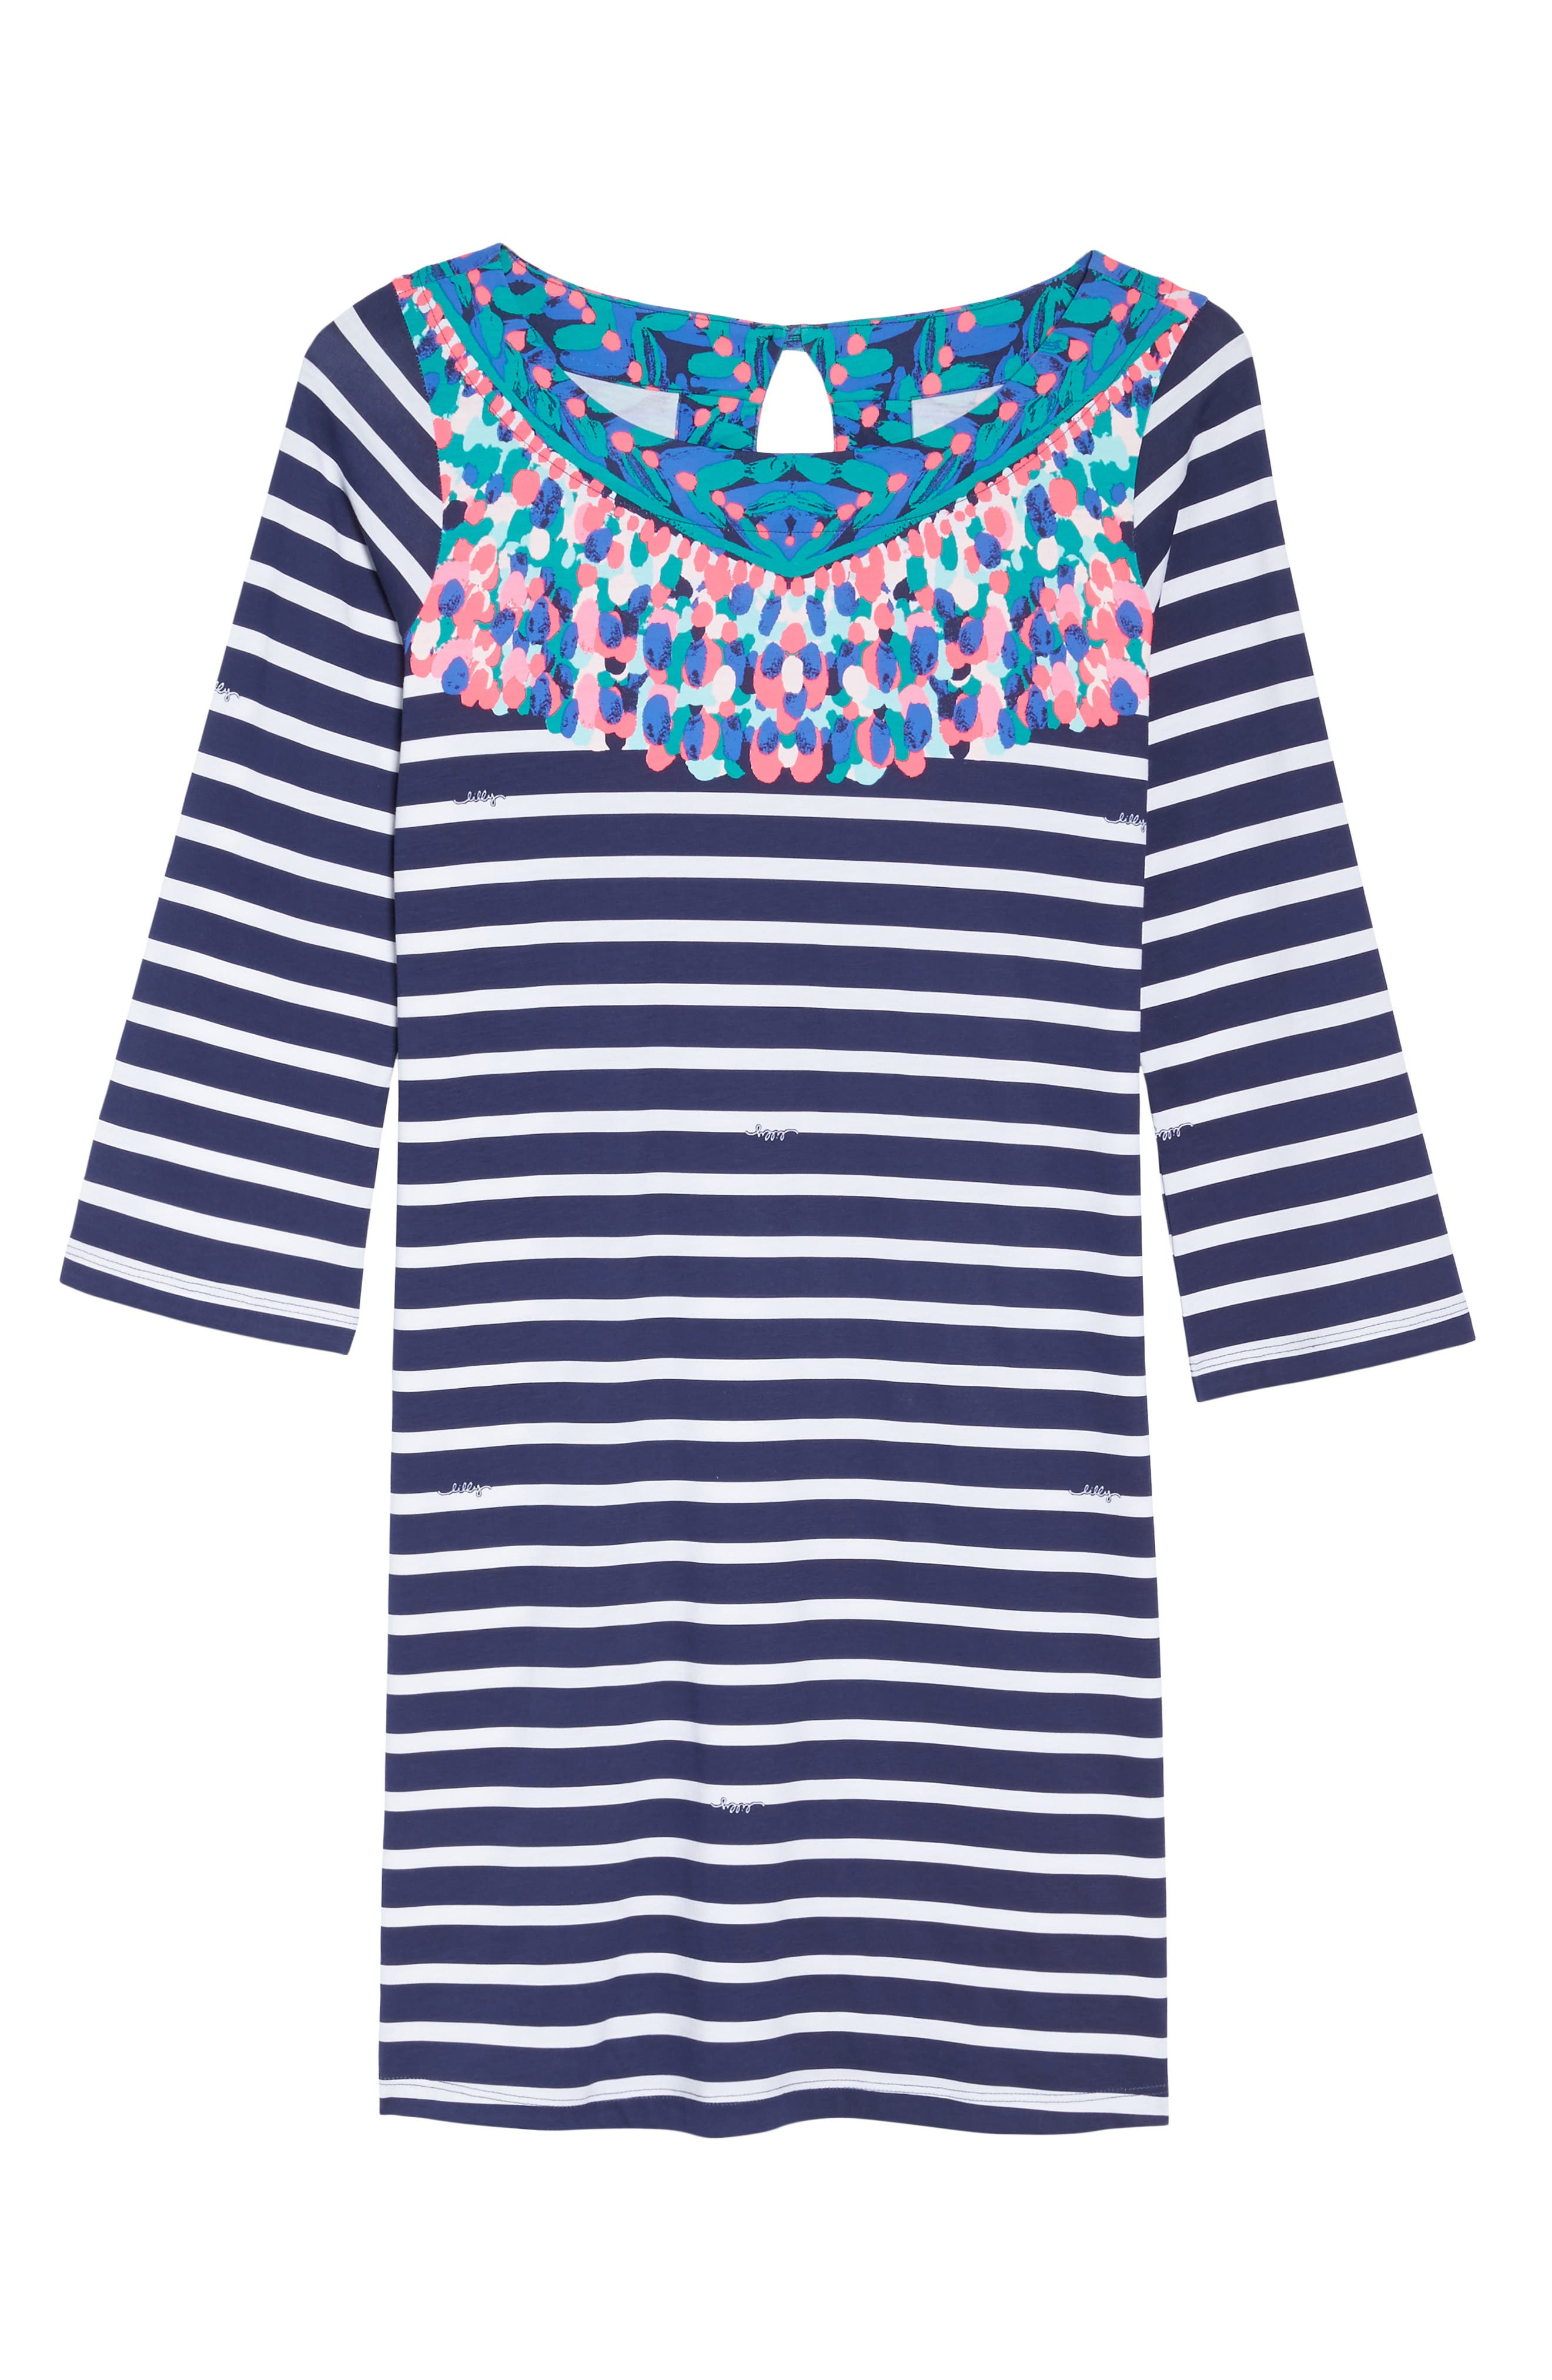 Bay Shift Dress,                             Alternate thumbnail 6, color,                             Bright Navy Island Medallion